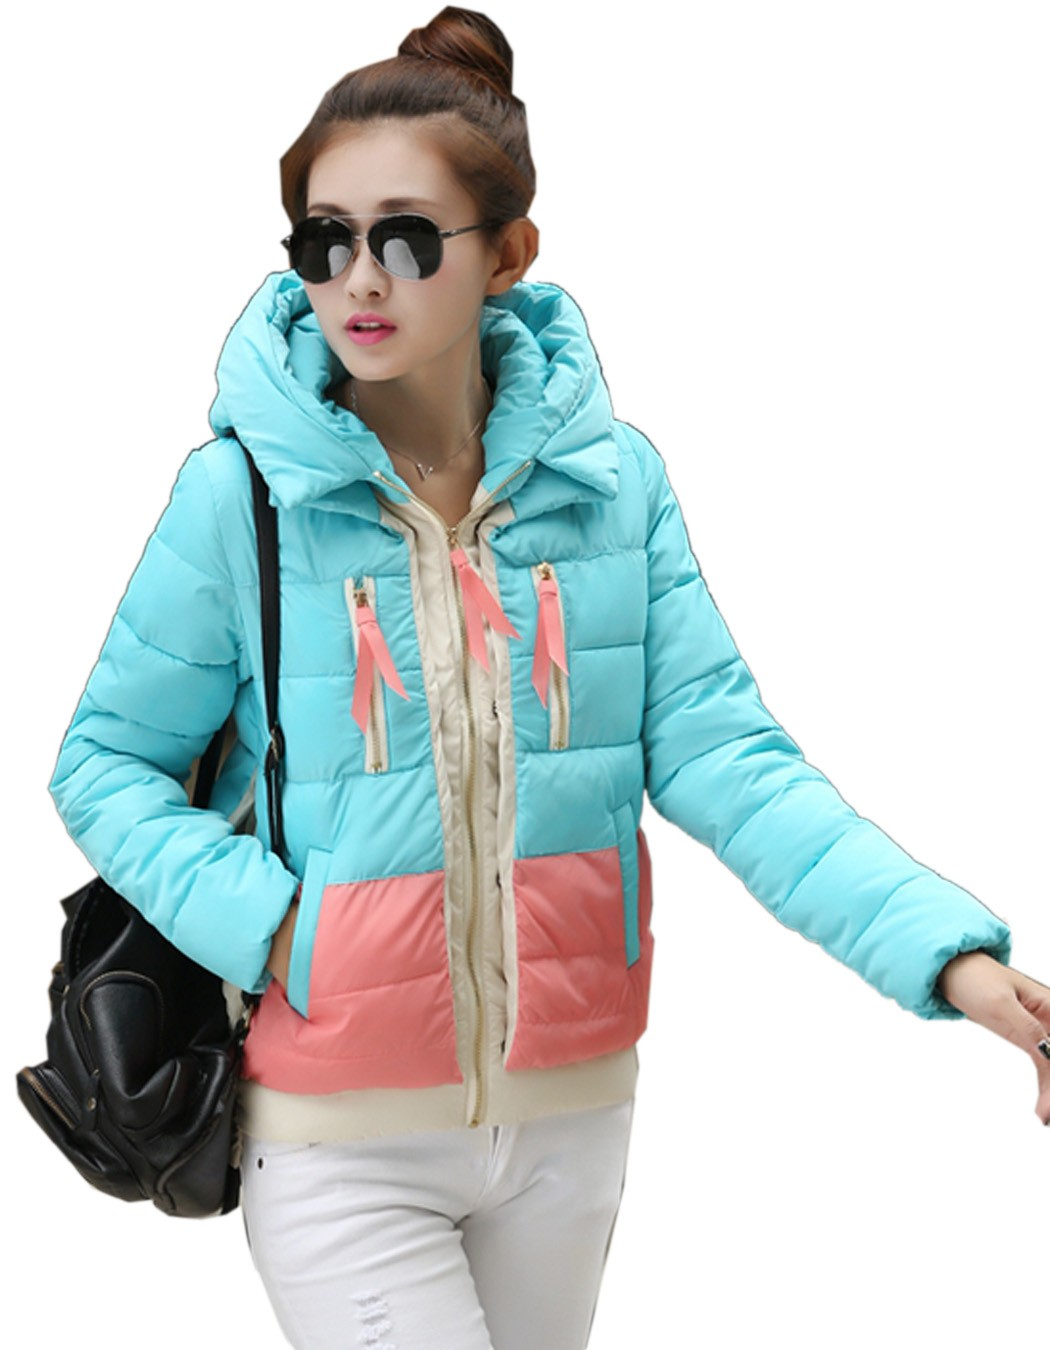 Best Price !2014 Women Winter Coat Fashion Color Splicing Parkas Thick Jacket Warm Hooded Down Coat 30(China (Mainland))